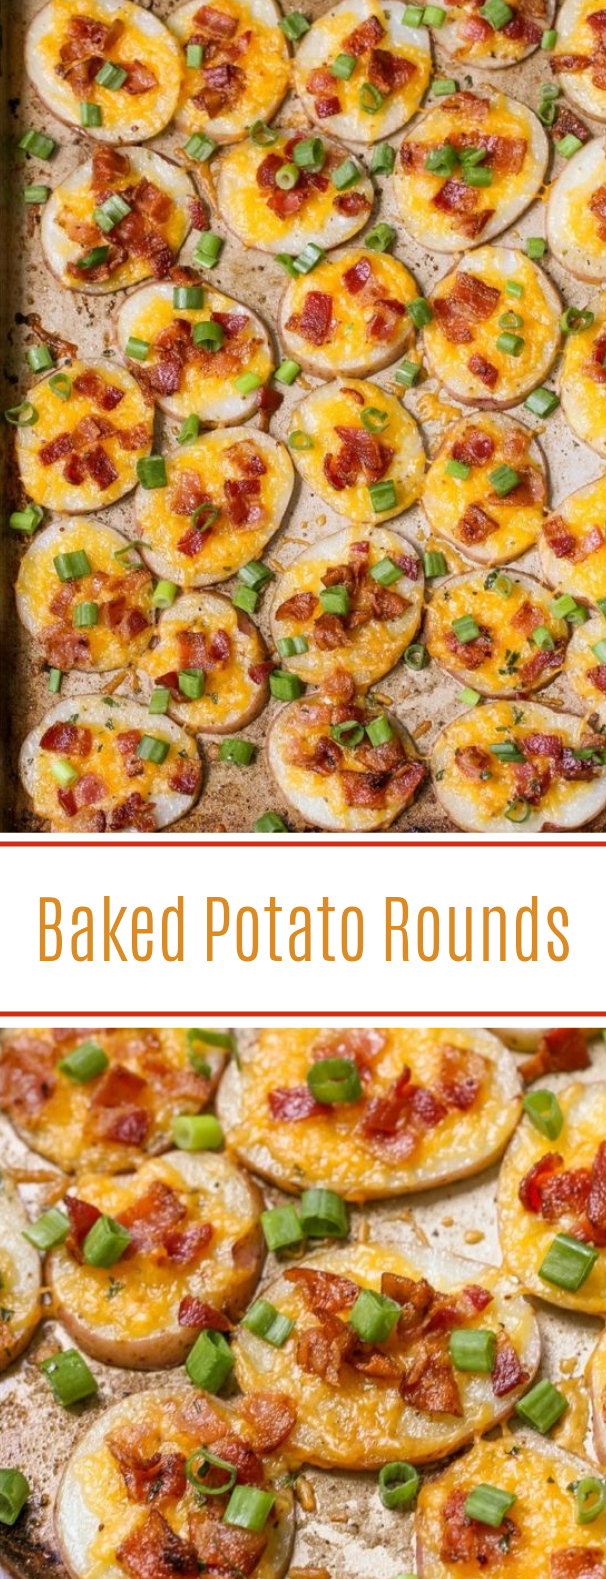 Loaded Baked Potato Rounds #appetizer #partyfood